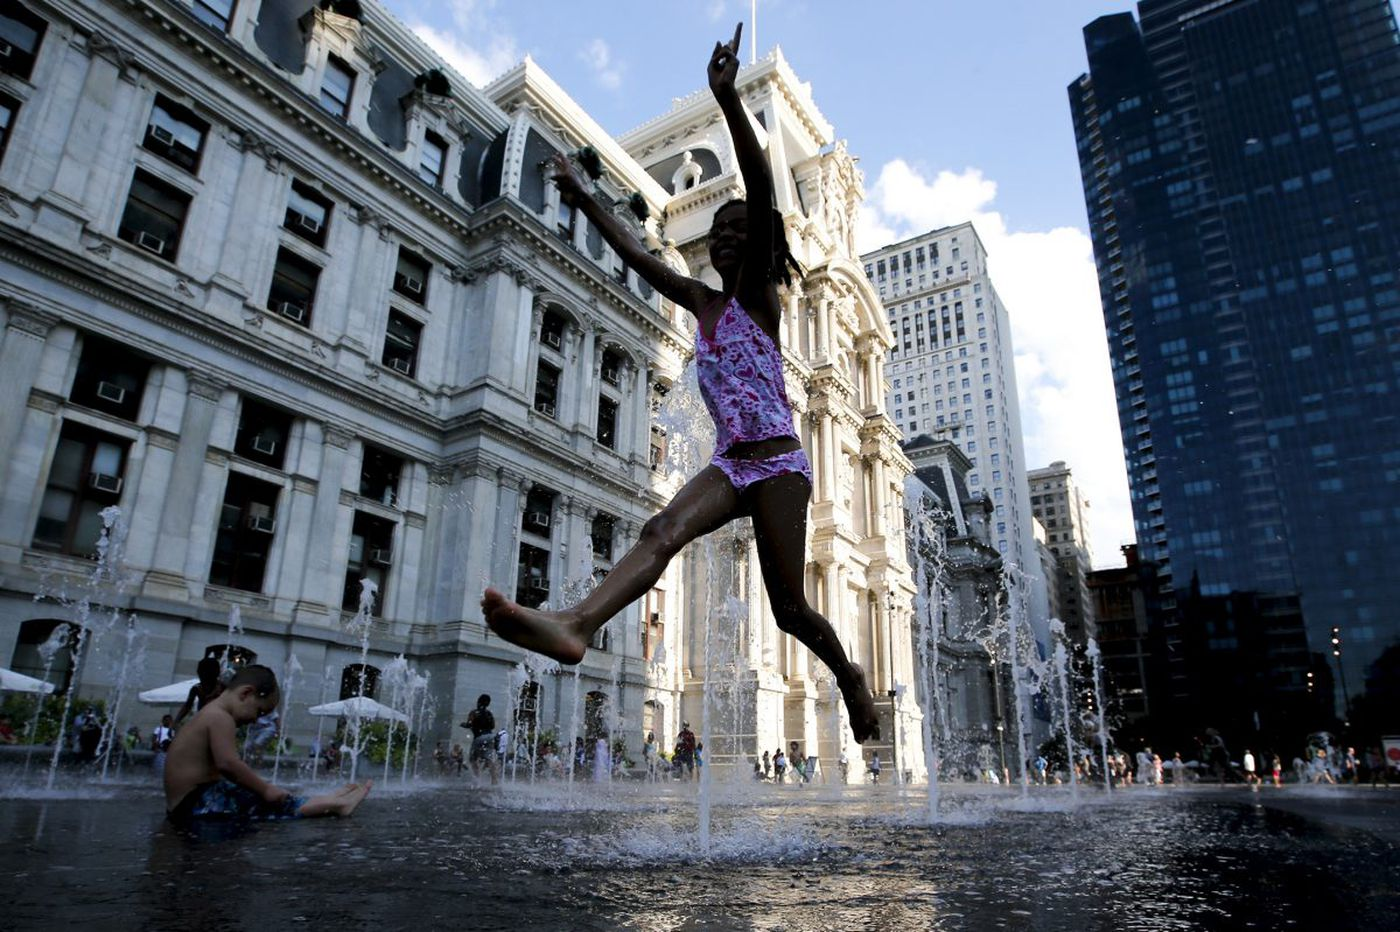 Spraygrounds bring summer joy, for less money and with less effort than pools